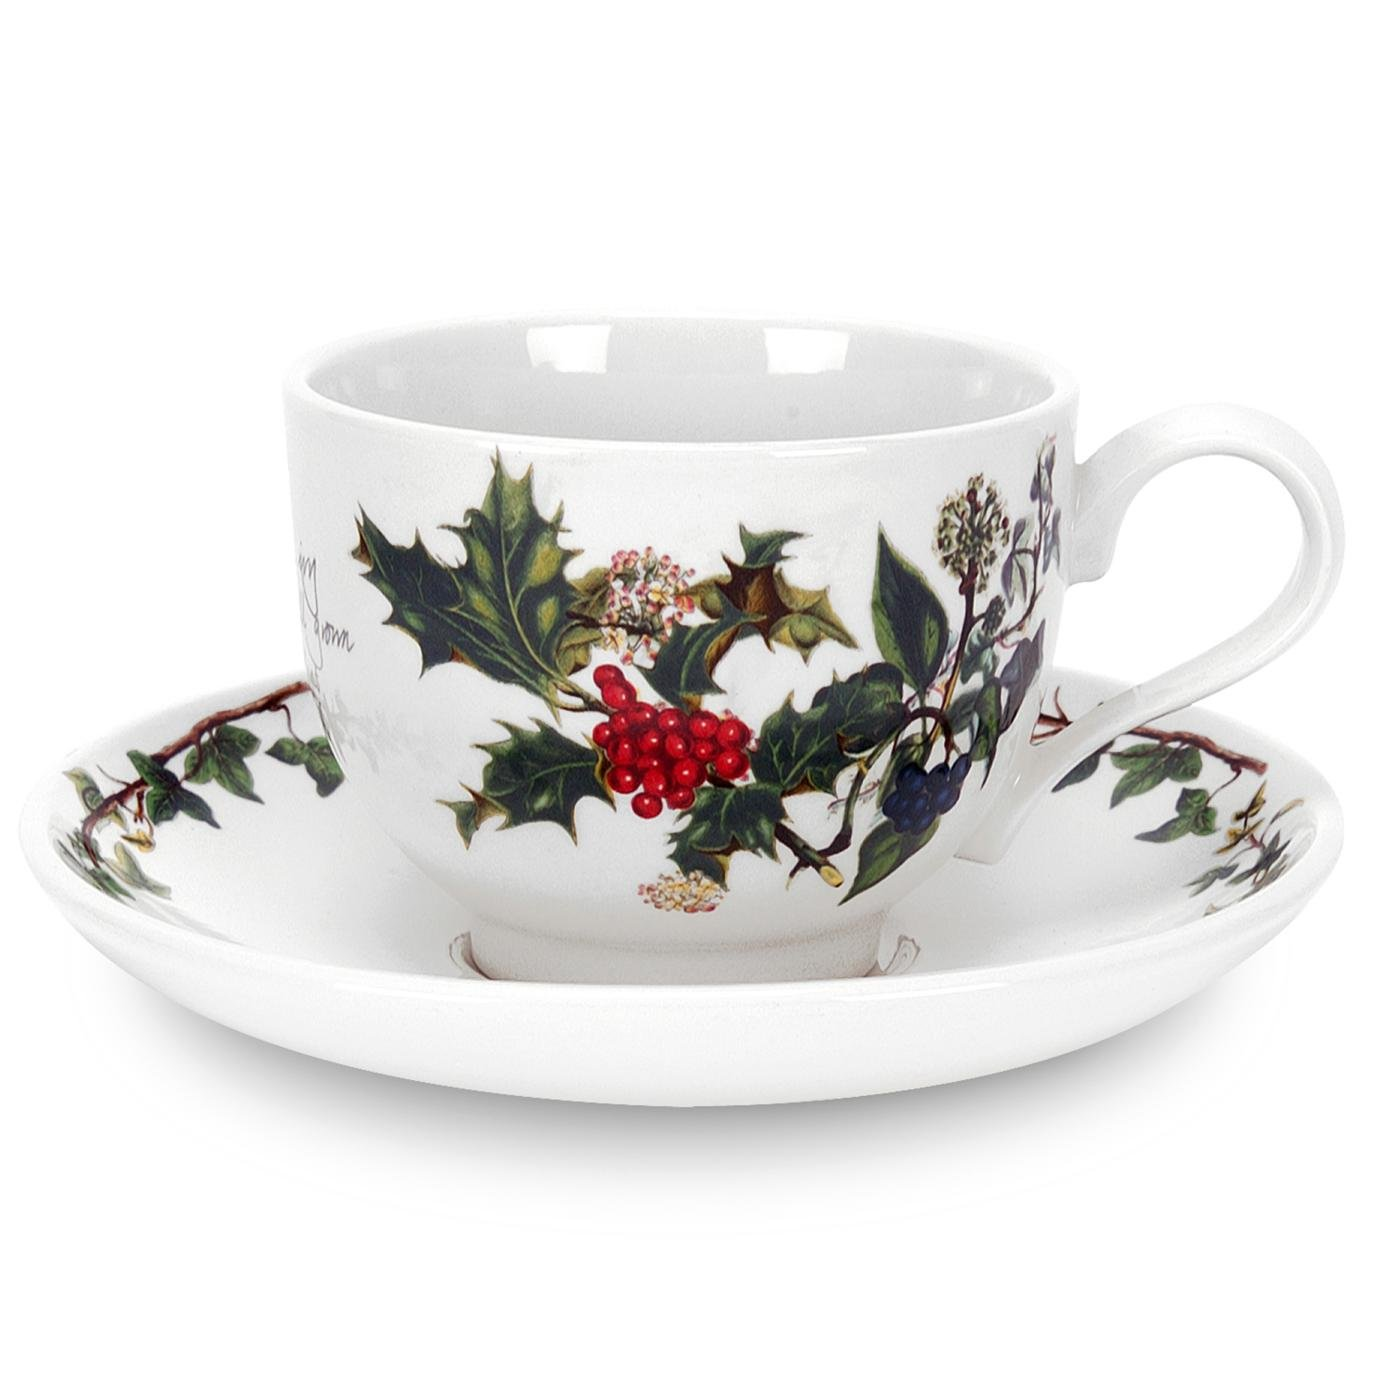 Portmeirion Holly and Ivy Teacup and Saucer Set of 6 64820